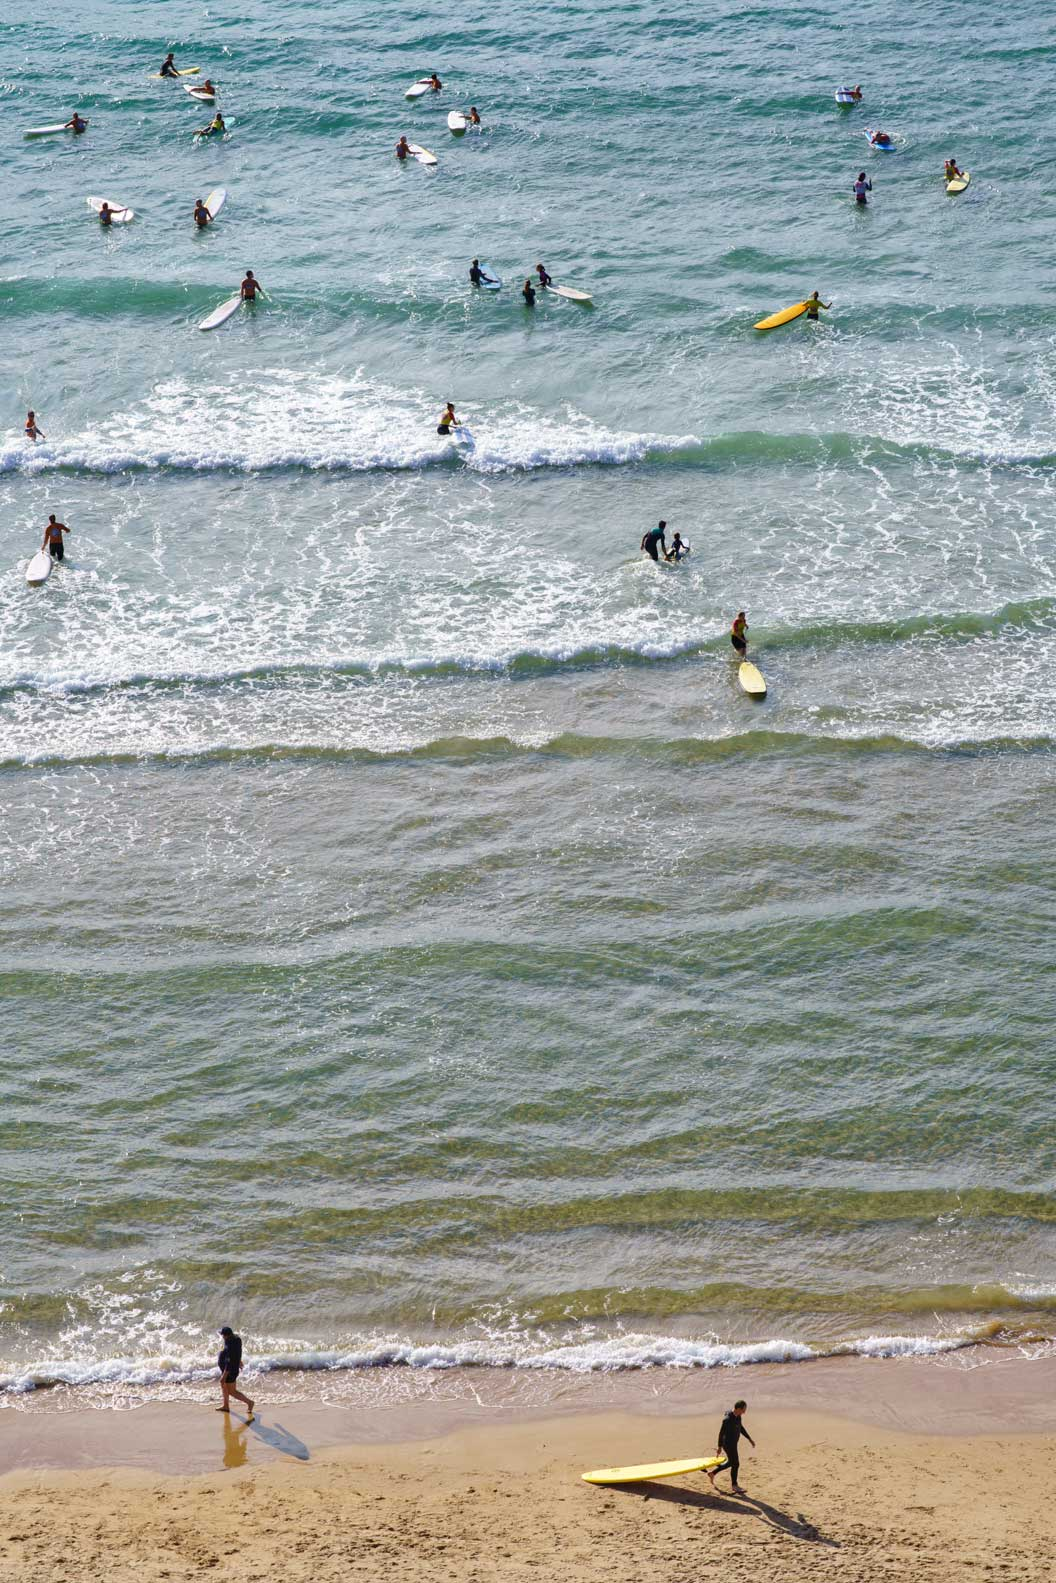 Ocean Surfing In Euskal Herria France & Spain   Stories + Objects Travel Images